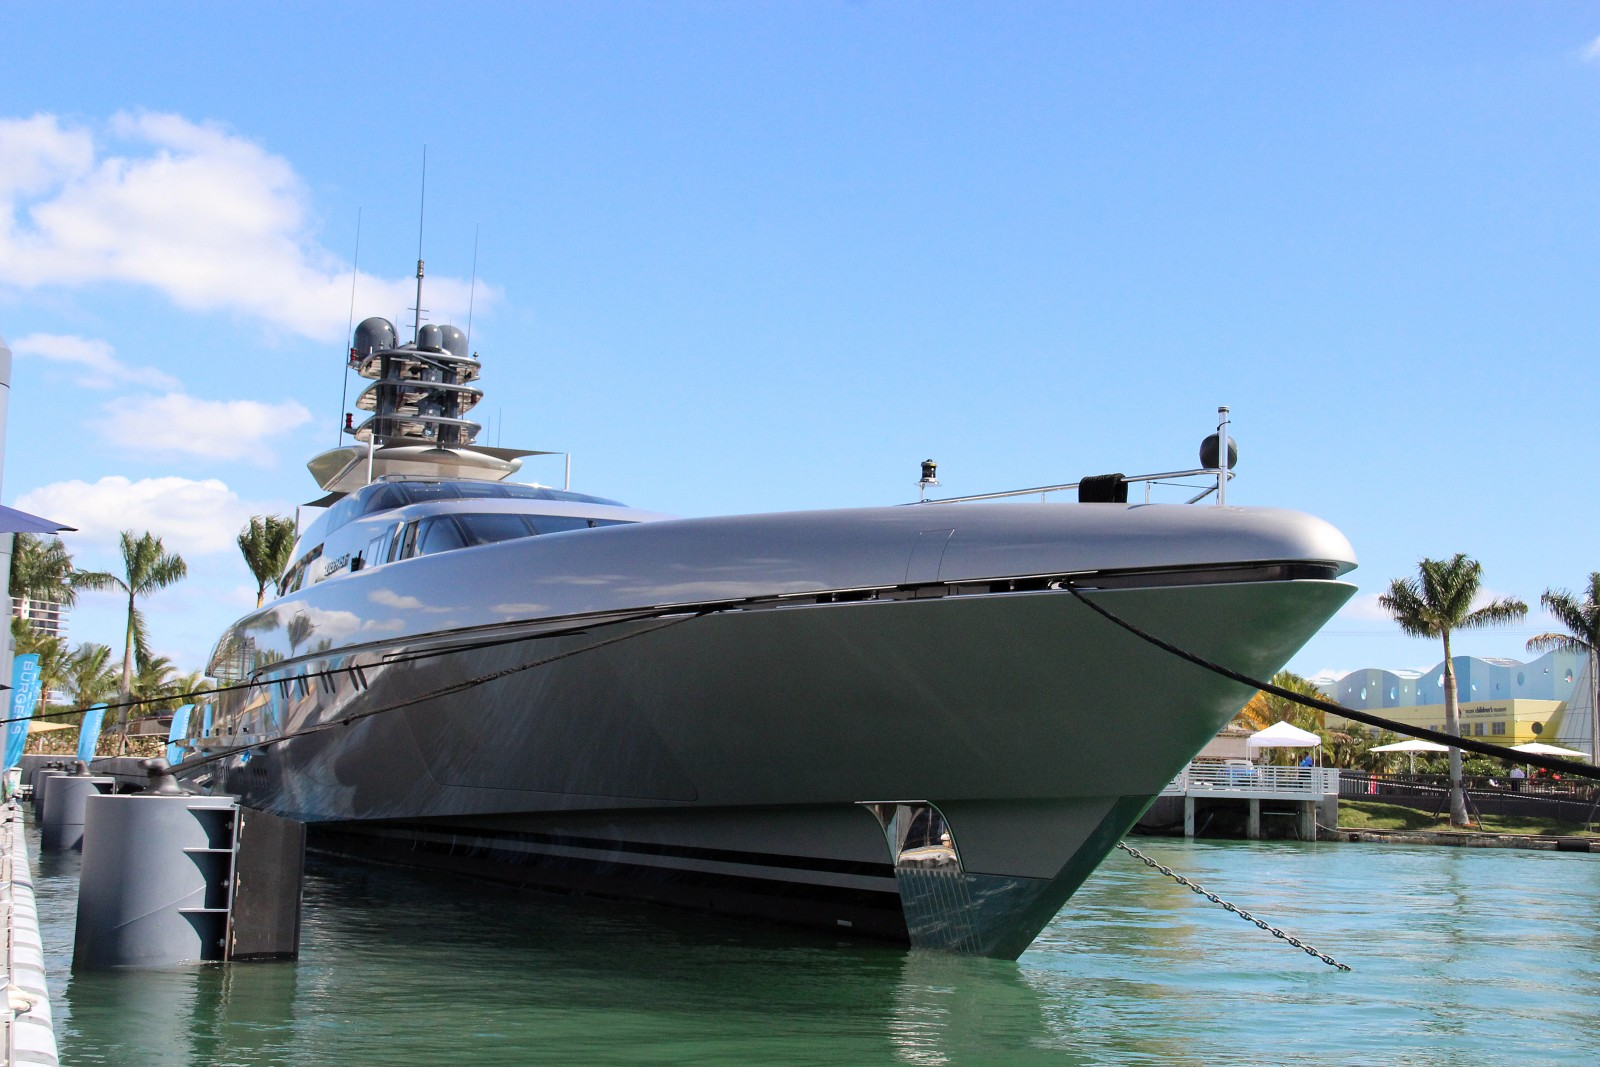 253-foot M/Y Silver Fast at Yachts Miami Beach. Photo by Suzette Cook